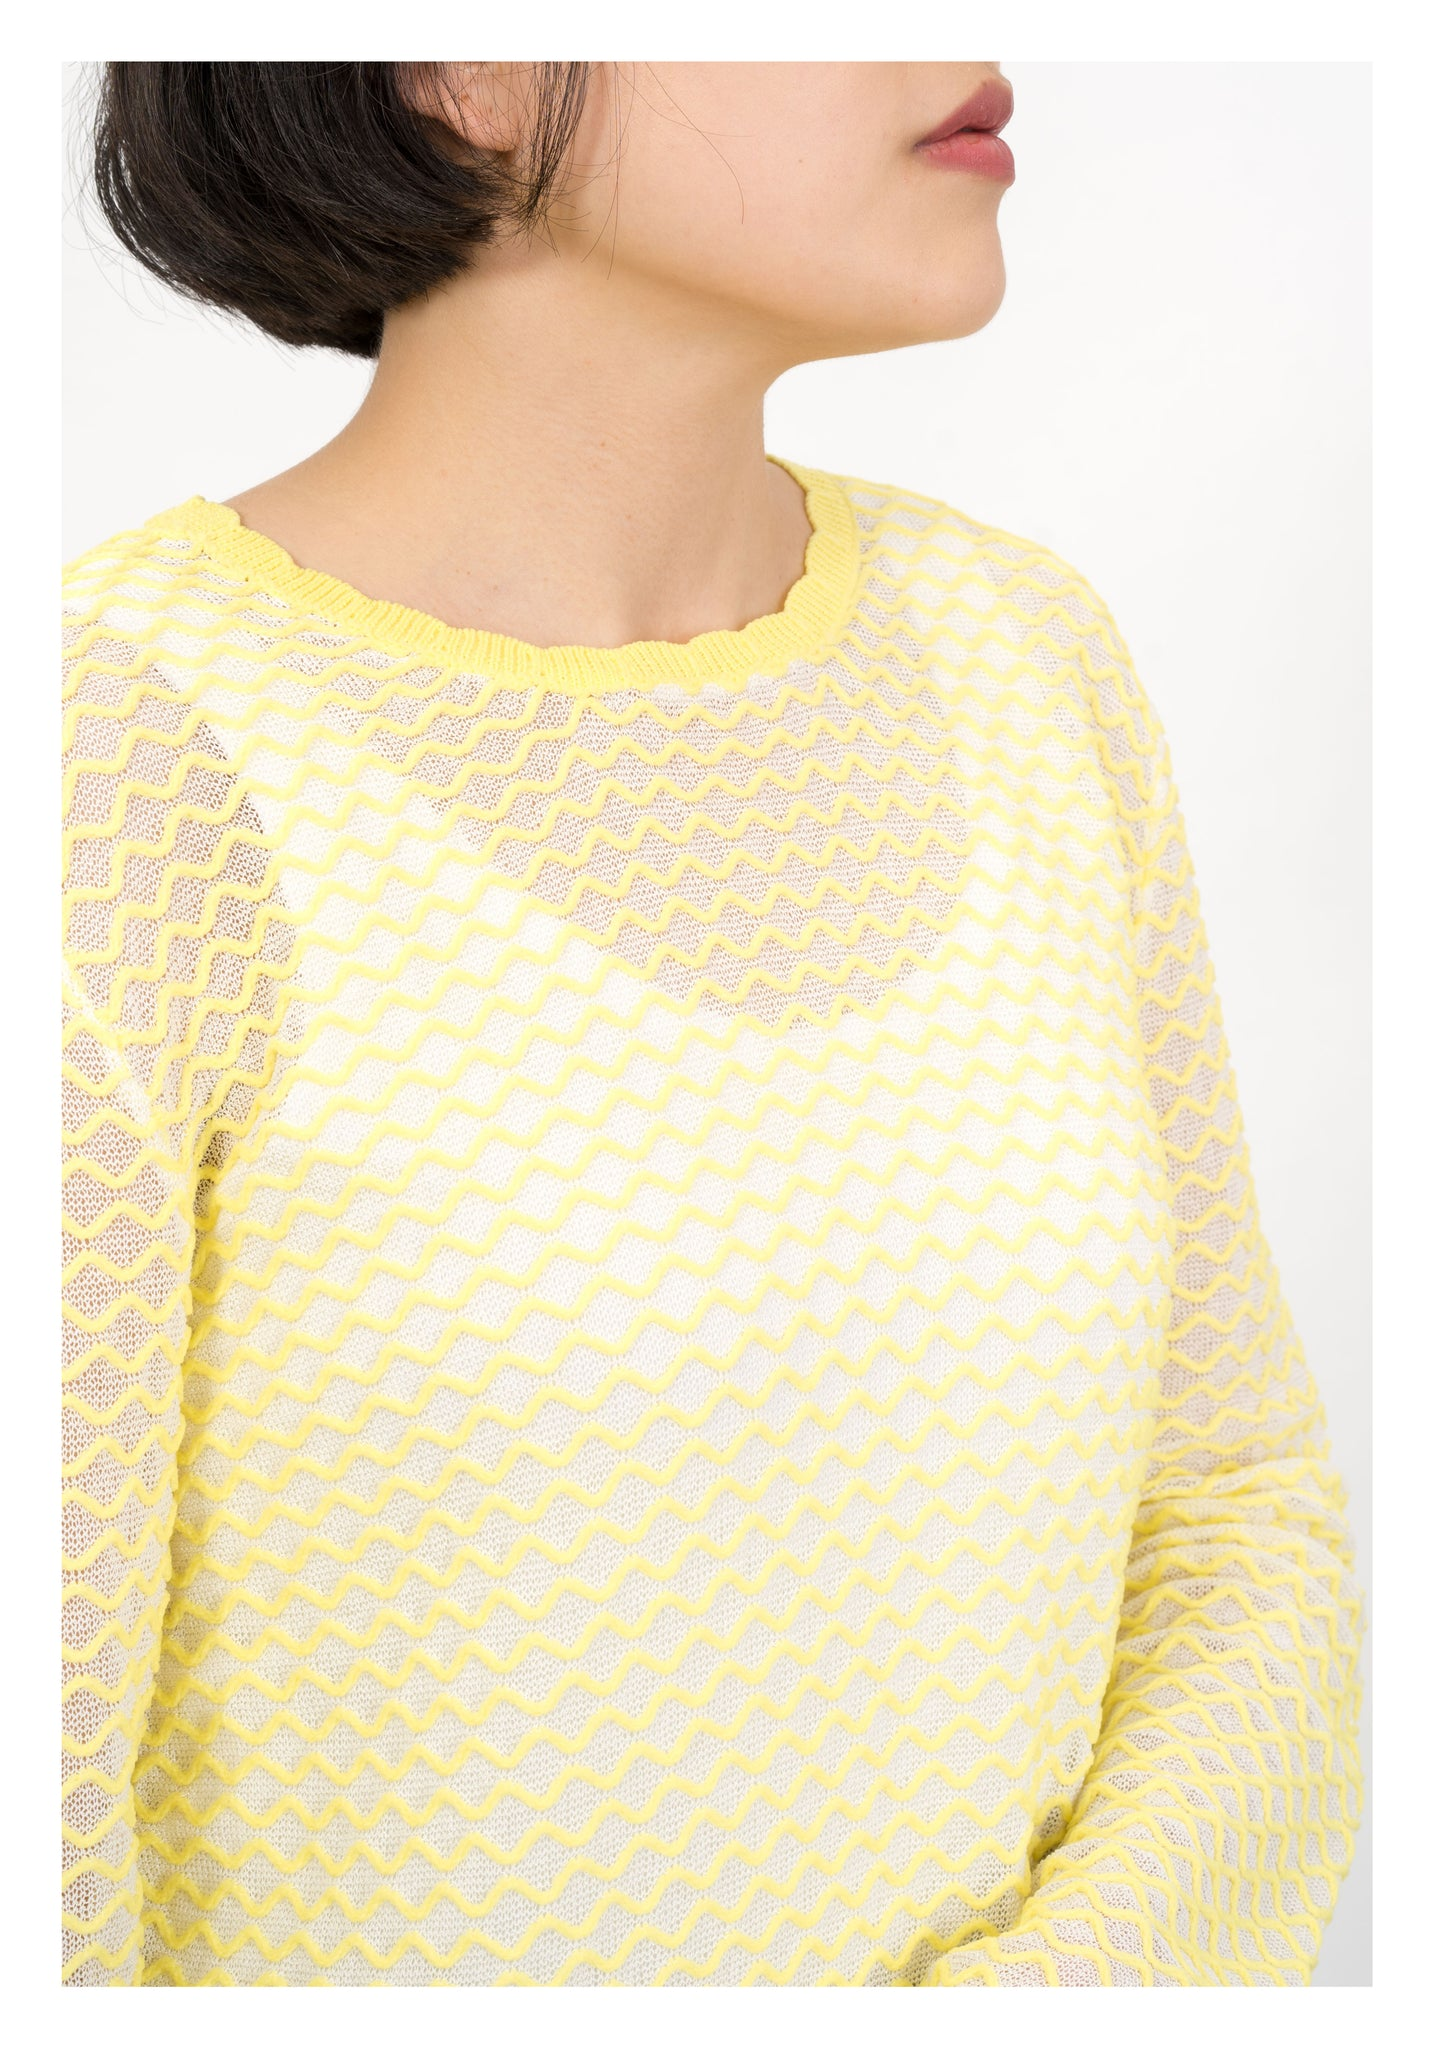 Scallop Knitted Top Yellow - whoami